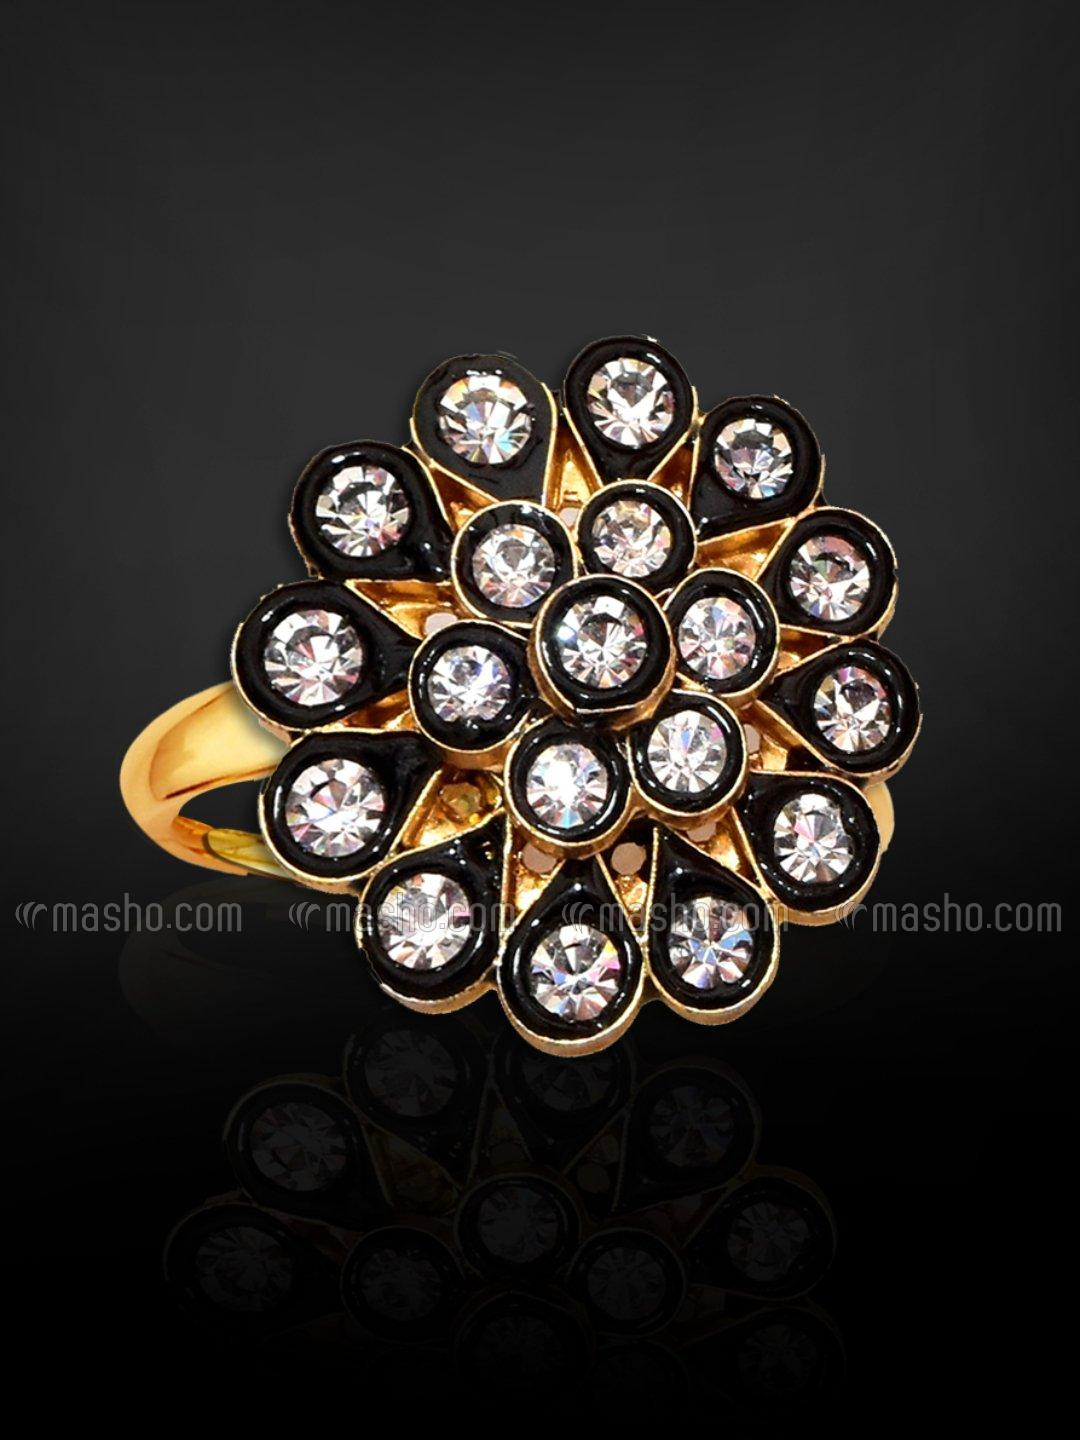 Awadhi Handmade High Quality Brass With Golden Polish Finger Rings In Black